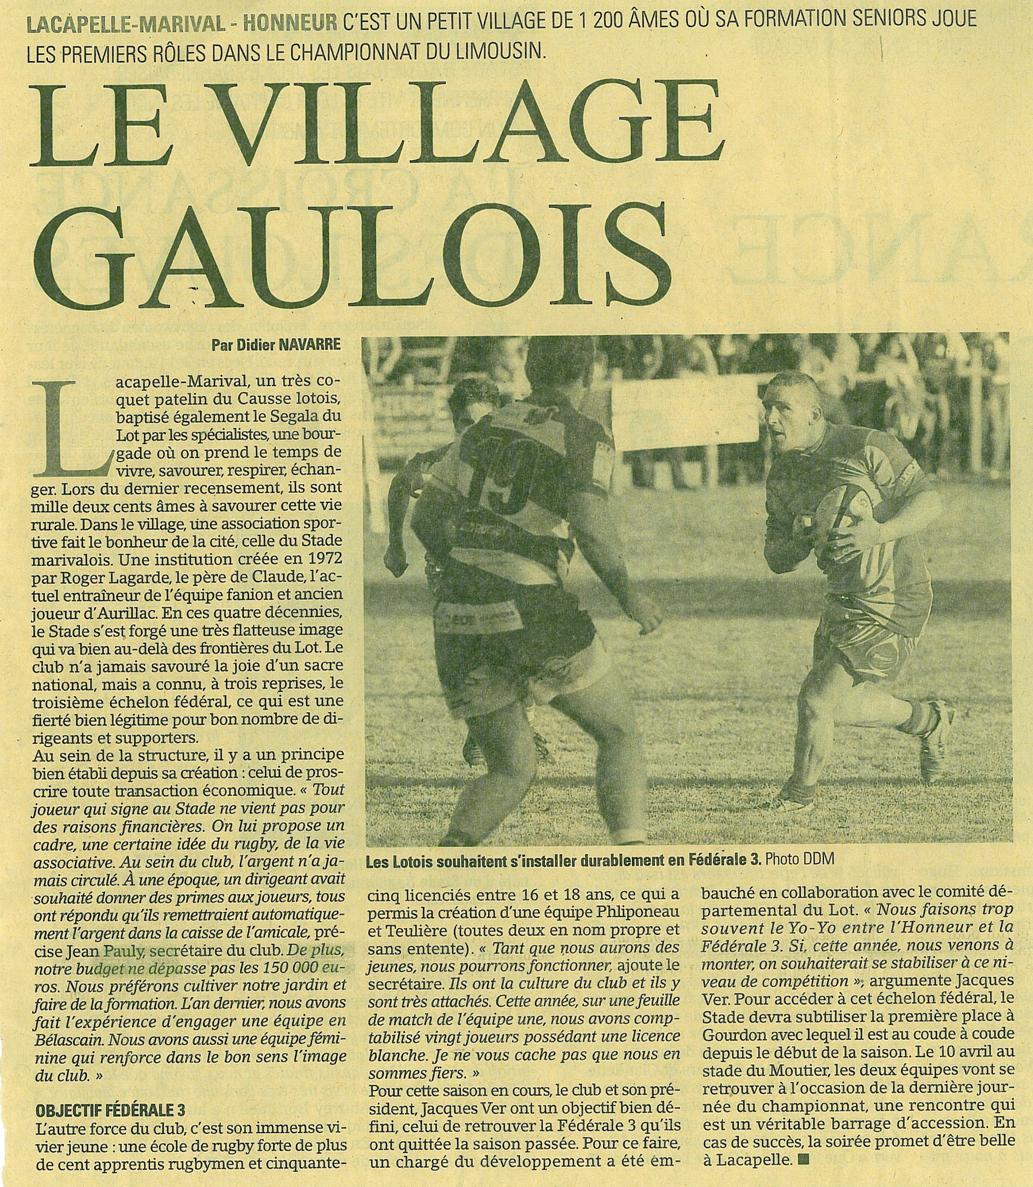 article midiolympique stlm 14032016